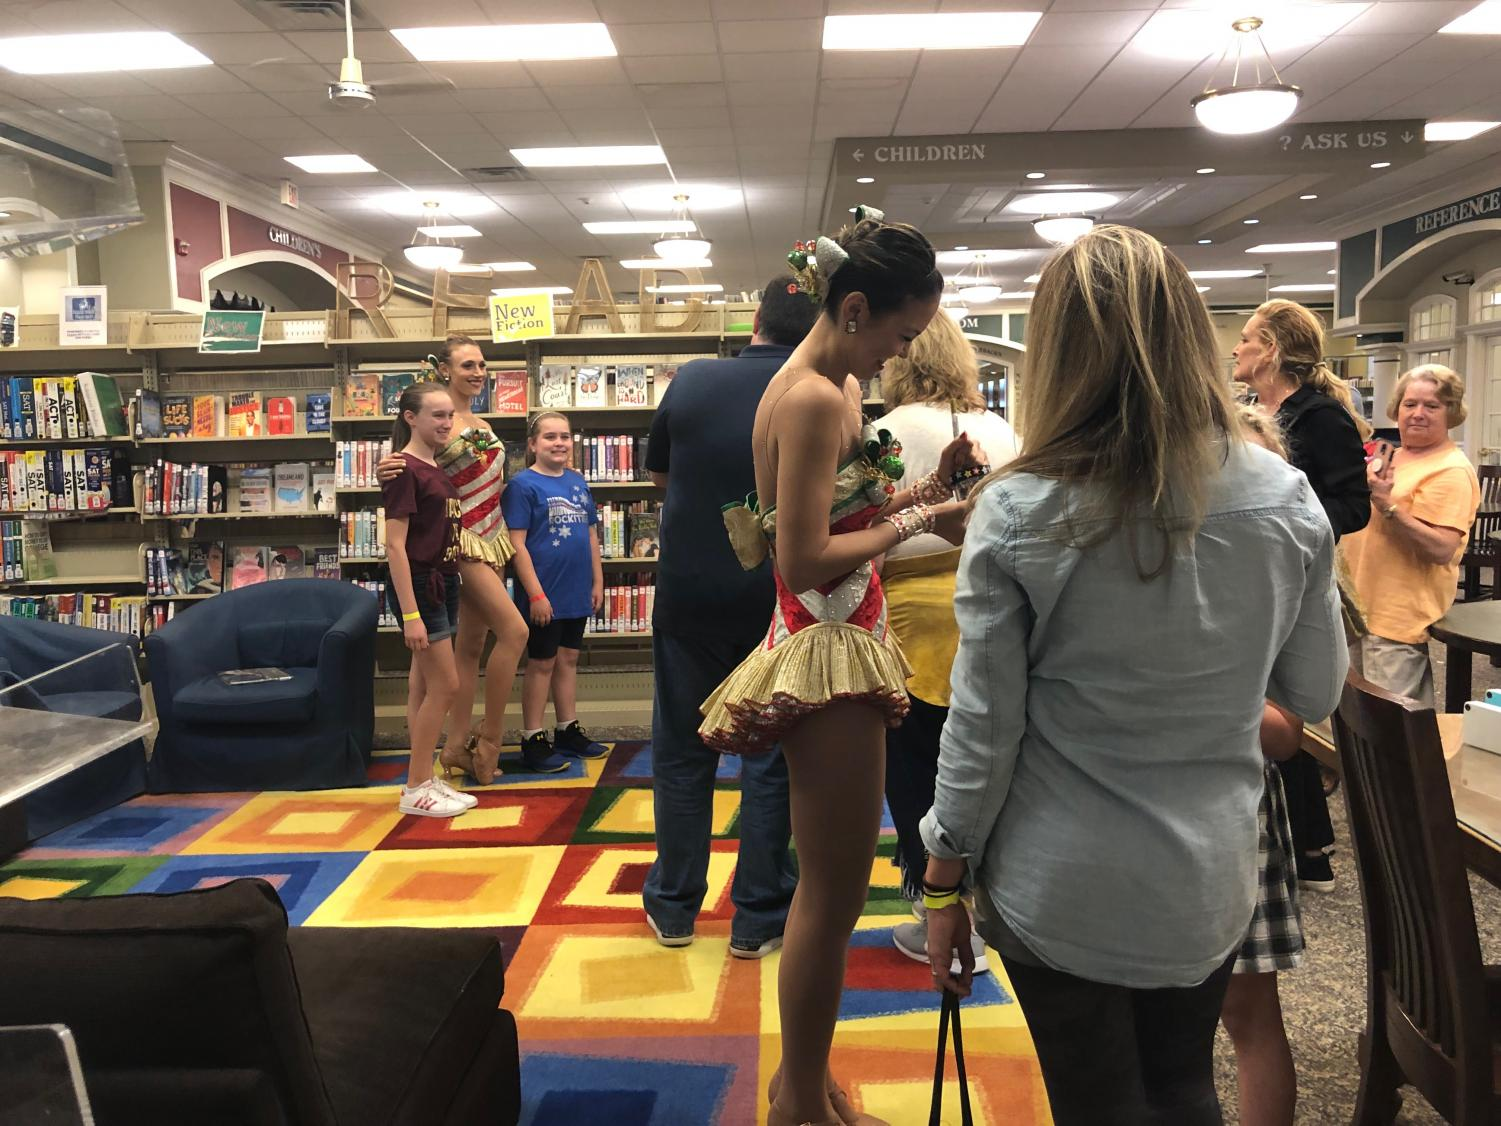 Radio City Rockettes, Megan Levinson and Christine Sienicki, interact with Glen Rock residents at the public library on Sept. 24.